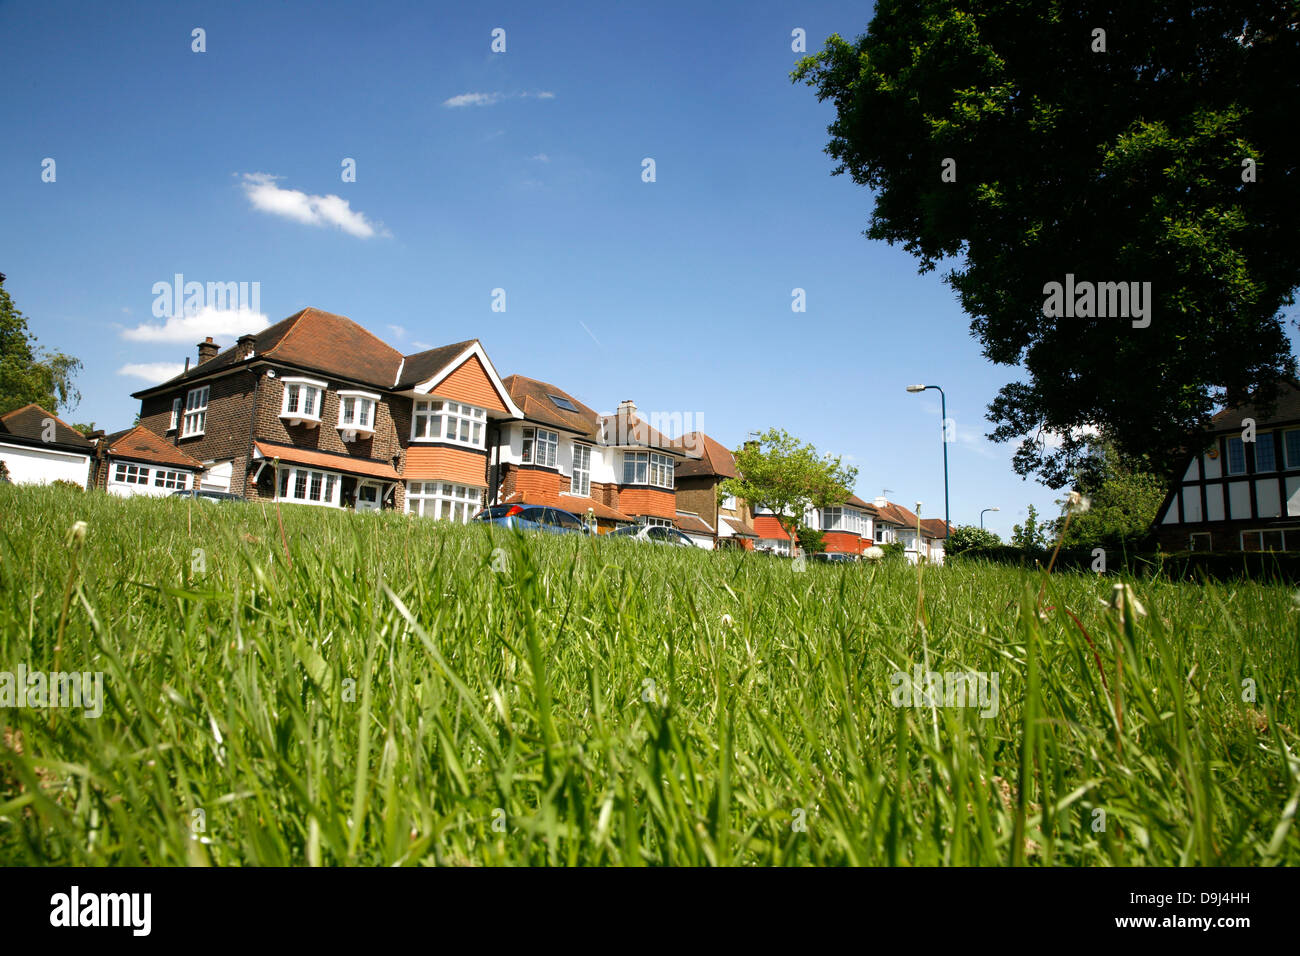 Suburban housing on Midholm in the Barn Hill area of Wembley Park, London, UK - Stock Image